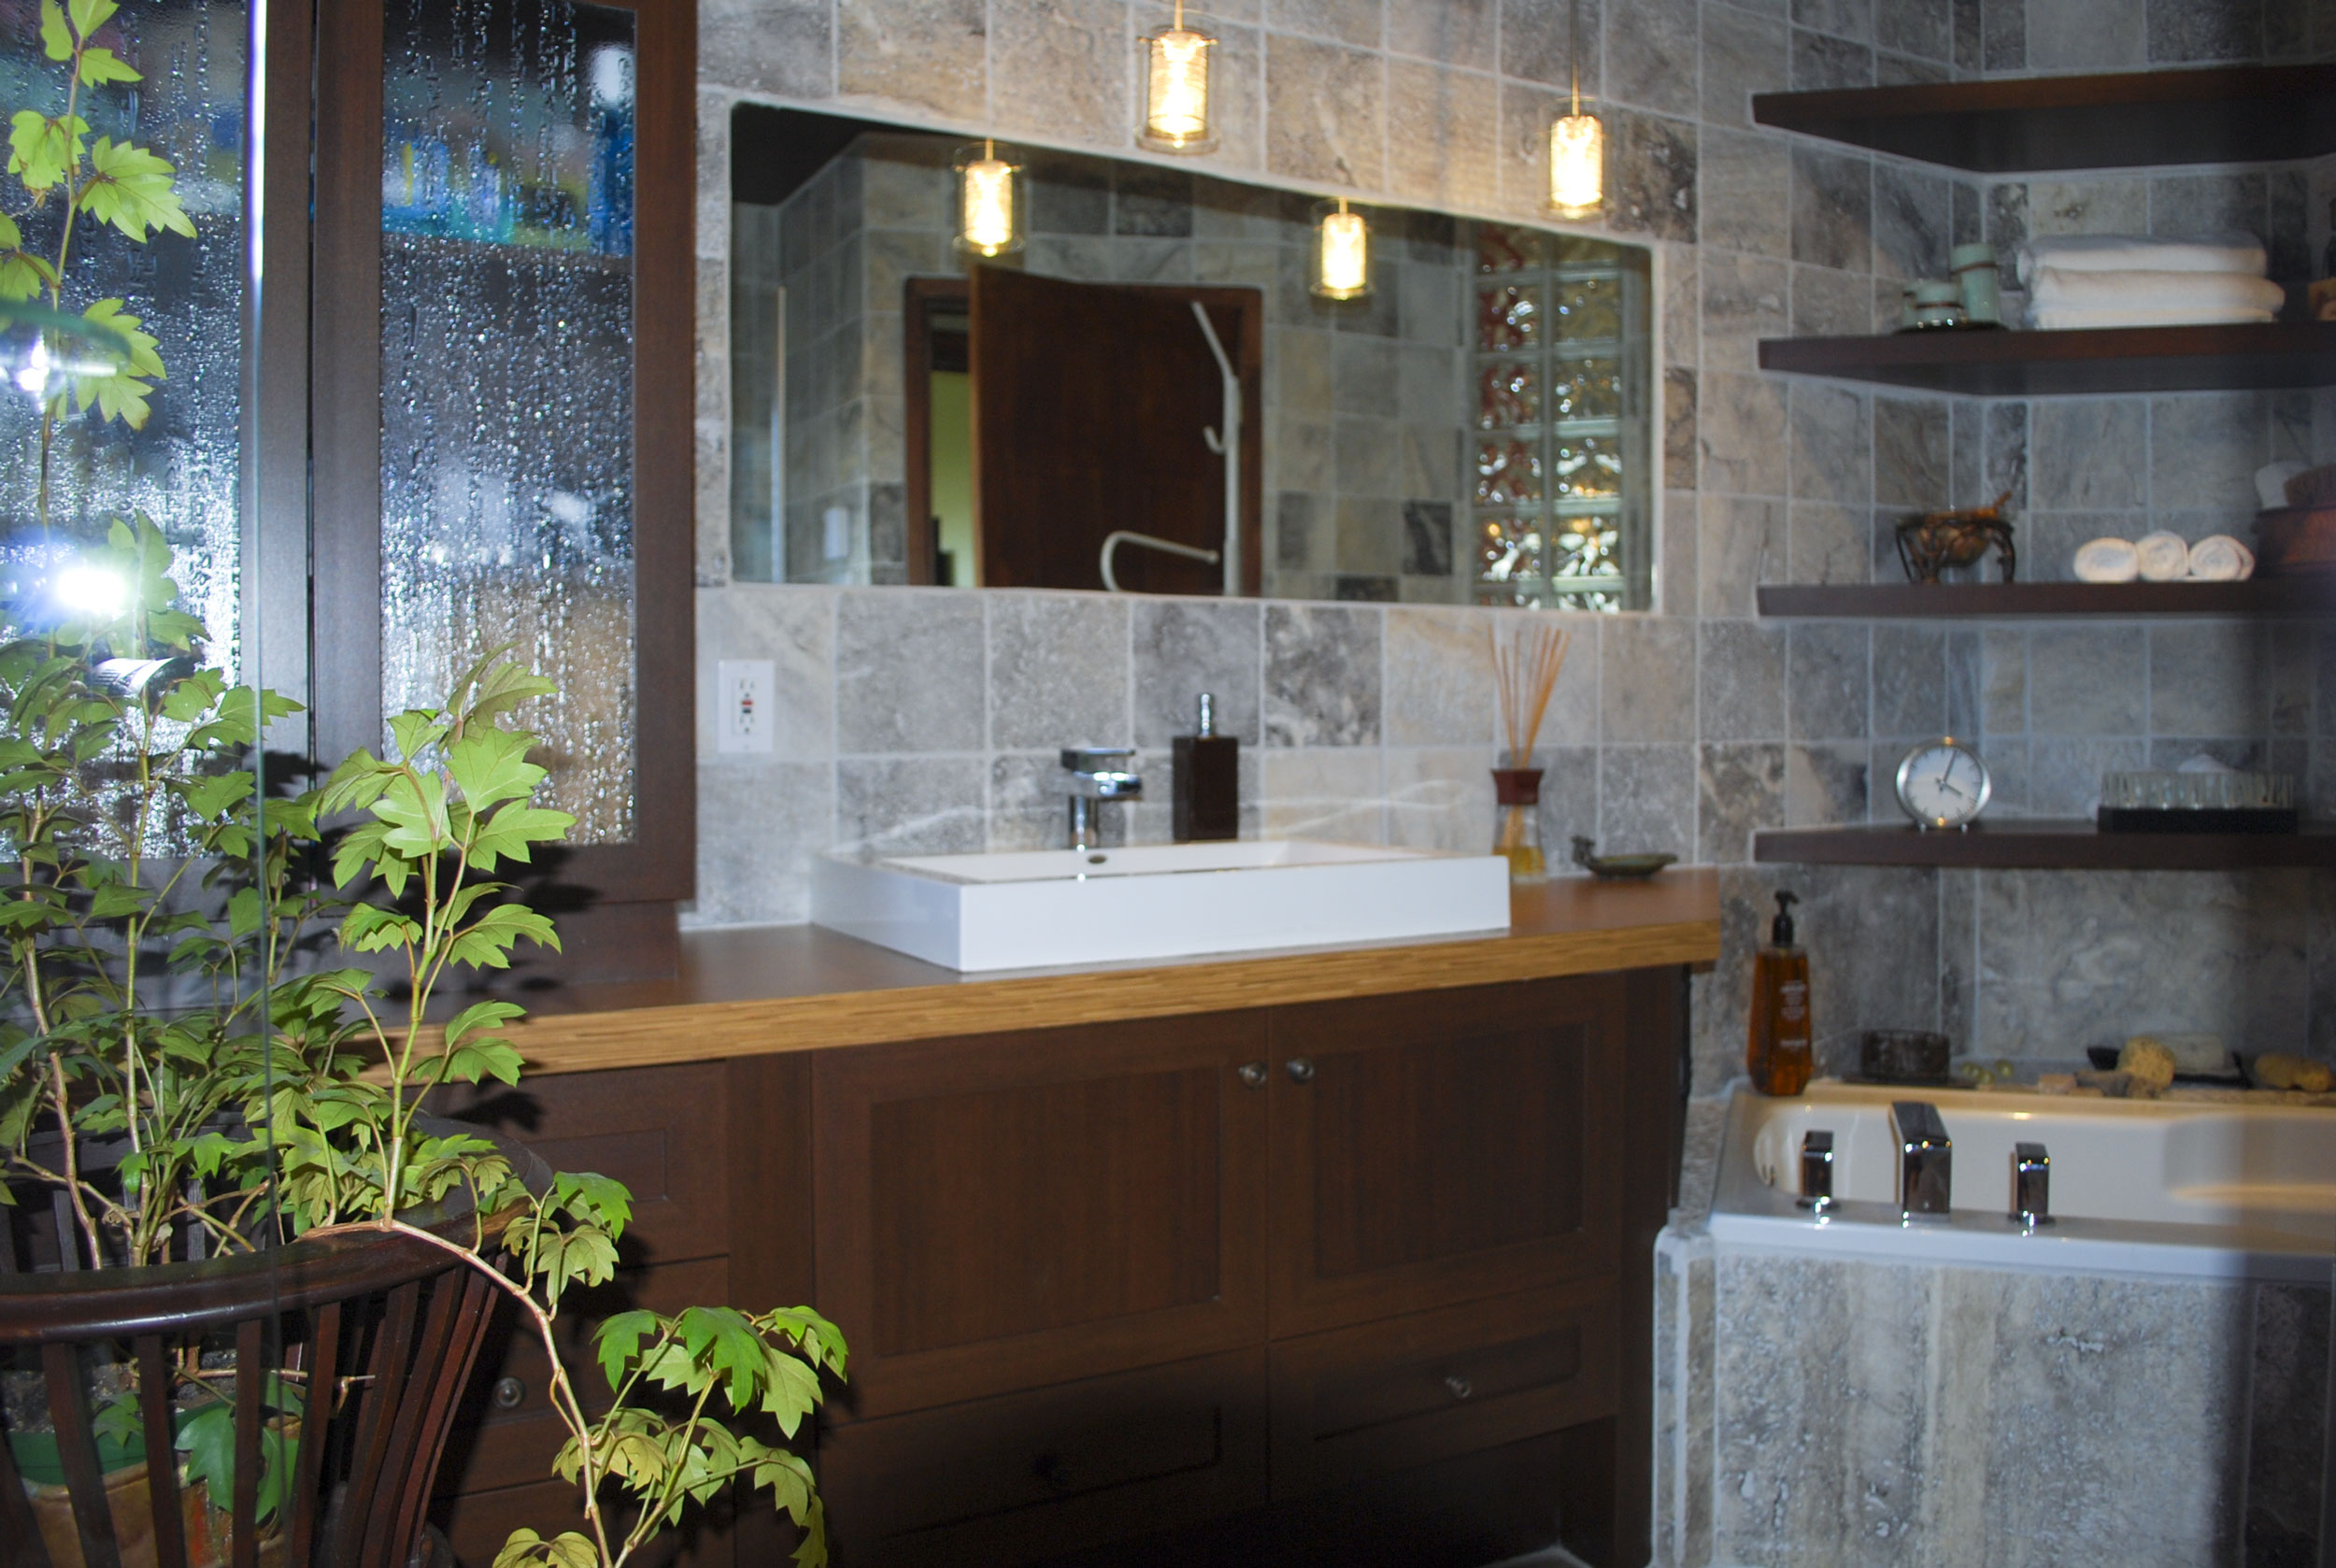 Design interieur salle de bain st jerome 2 laurentides for Designer interieur laval